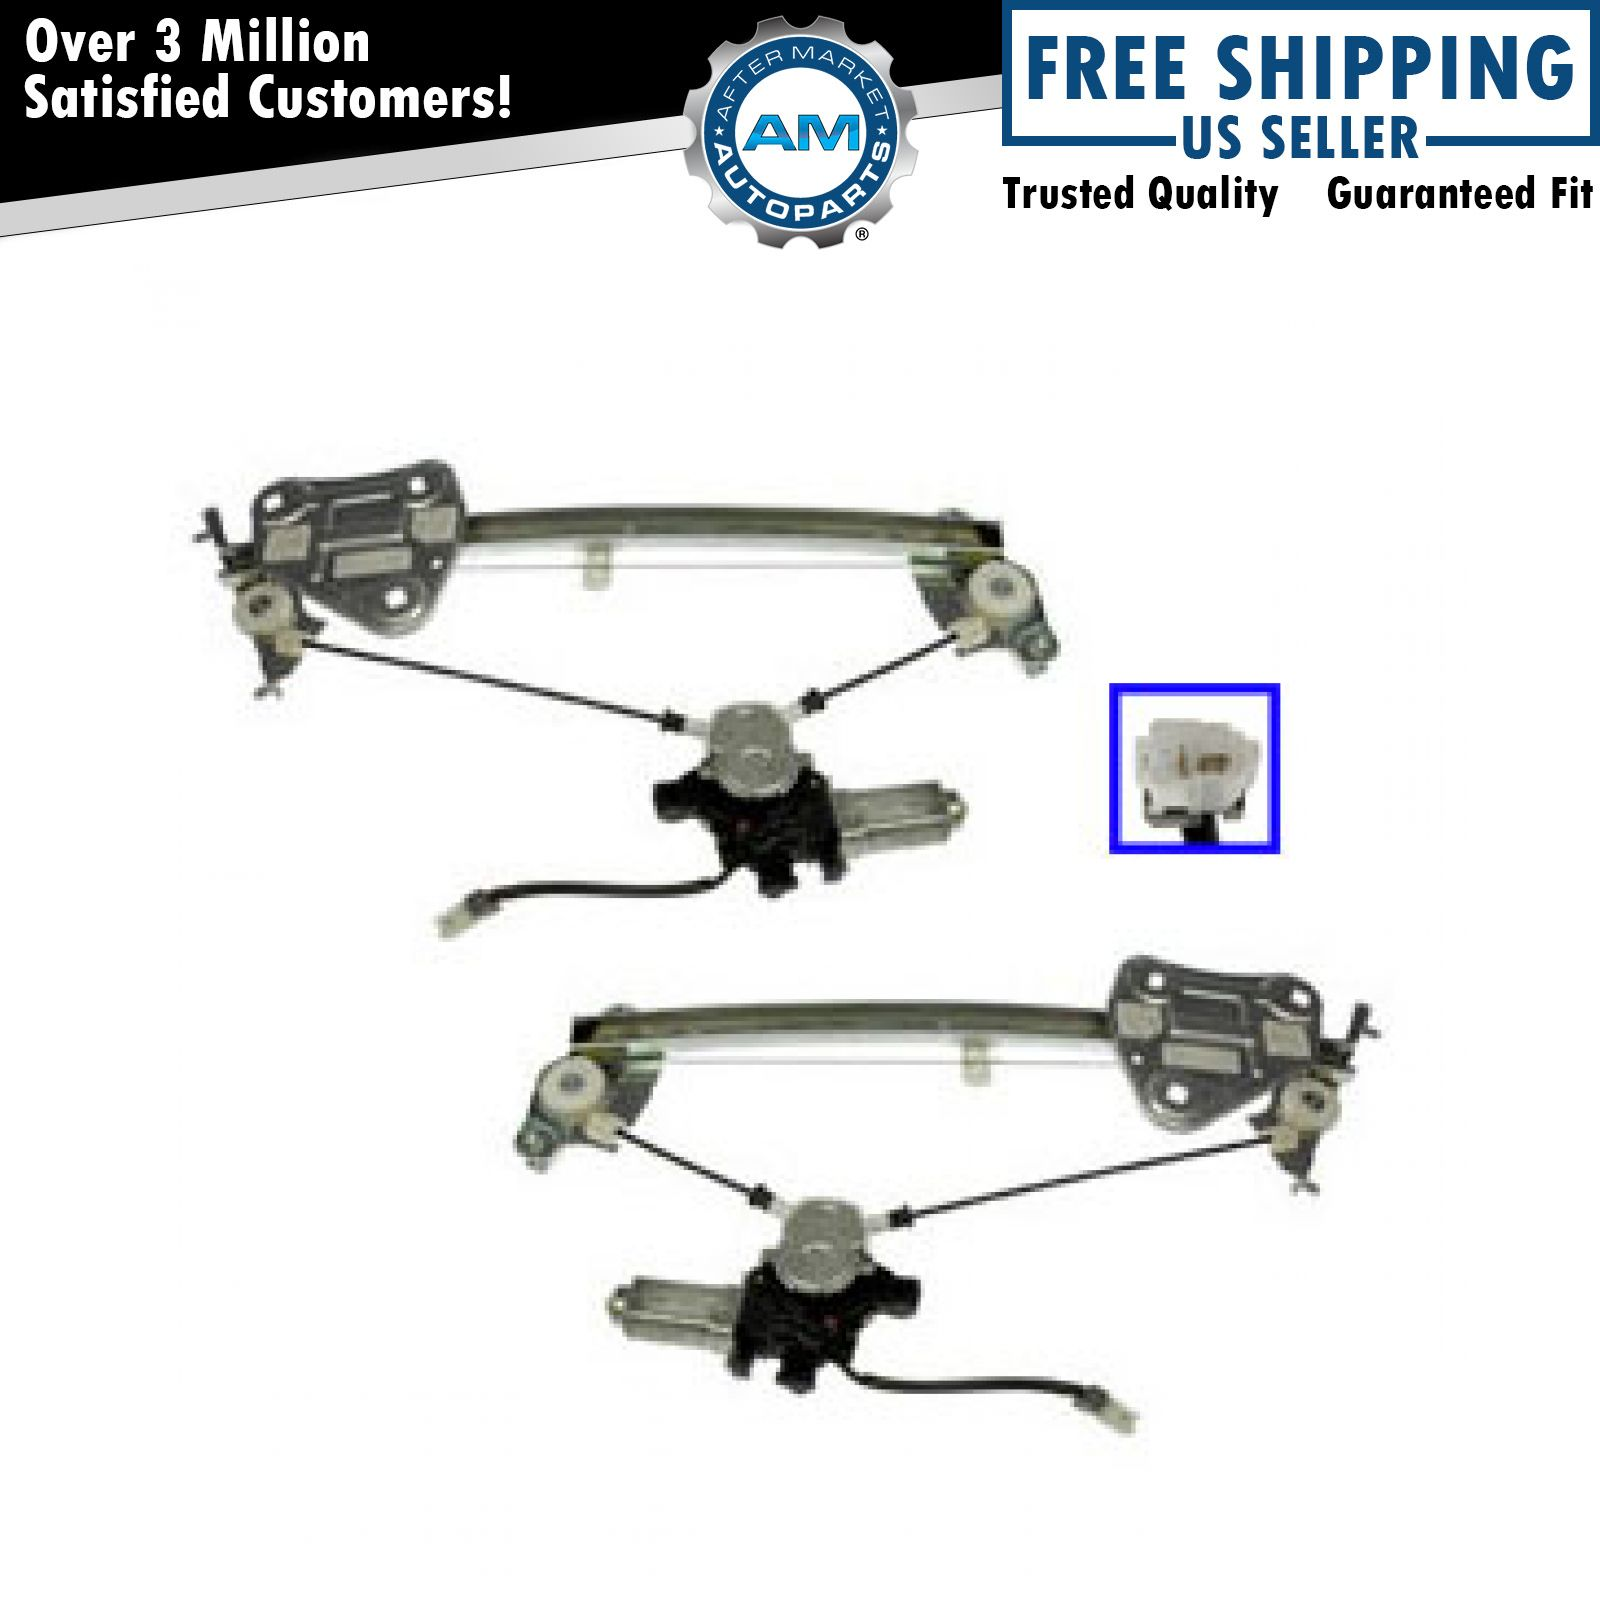 Dorman Power Window Regulator Amp Motor Pair For Eclipse Sebring Stratus Coupe